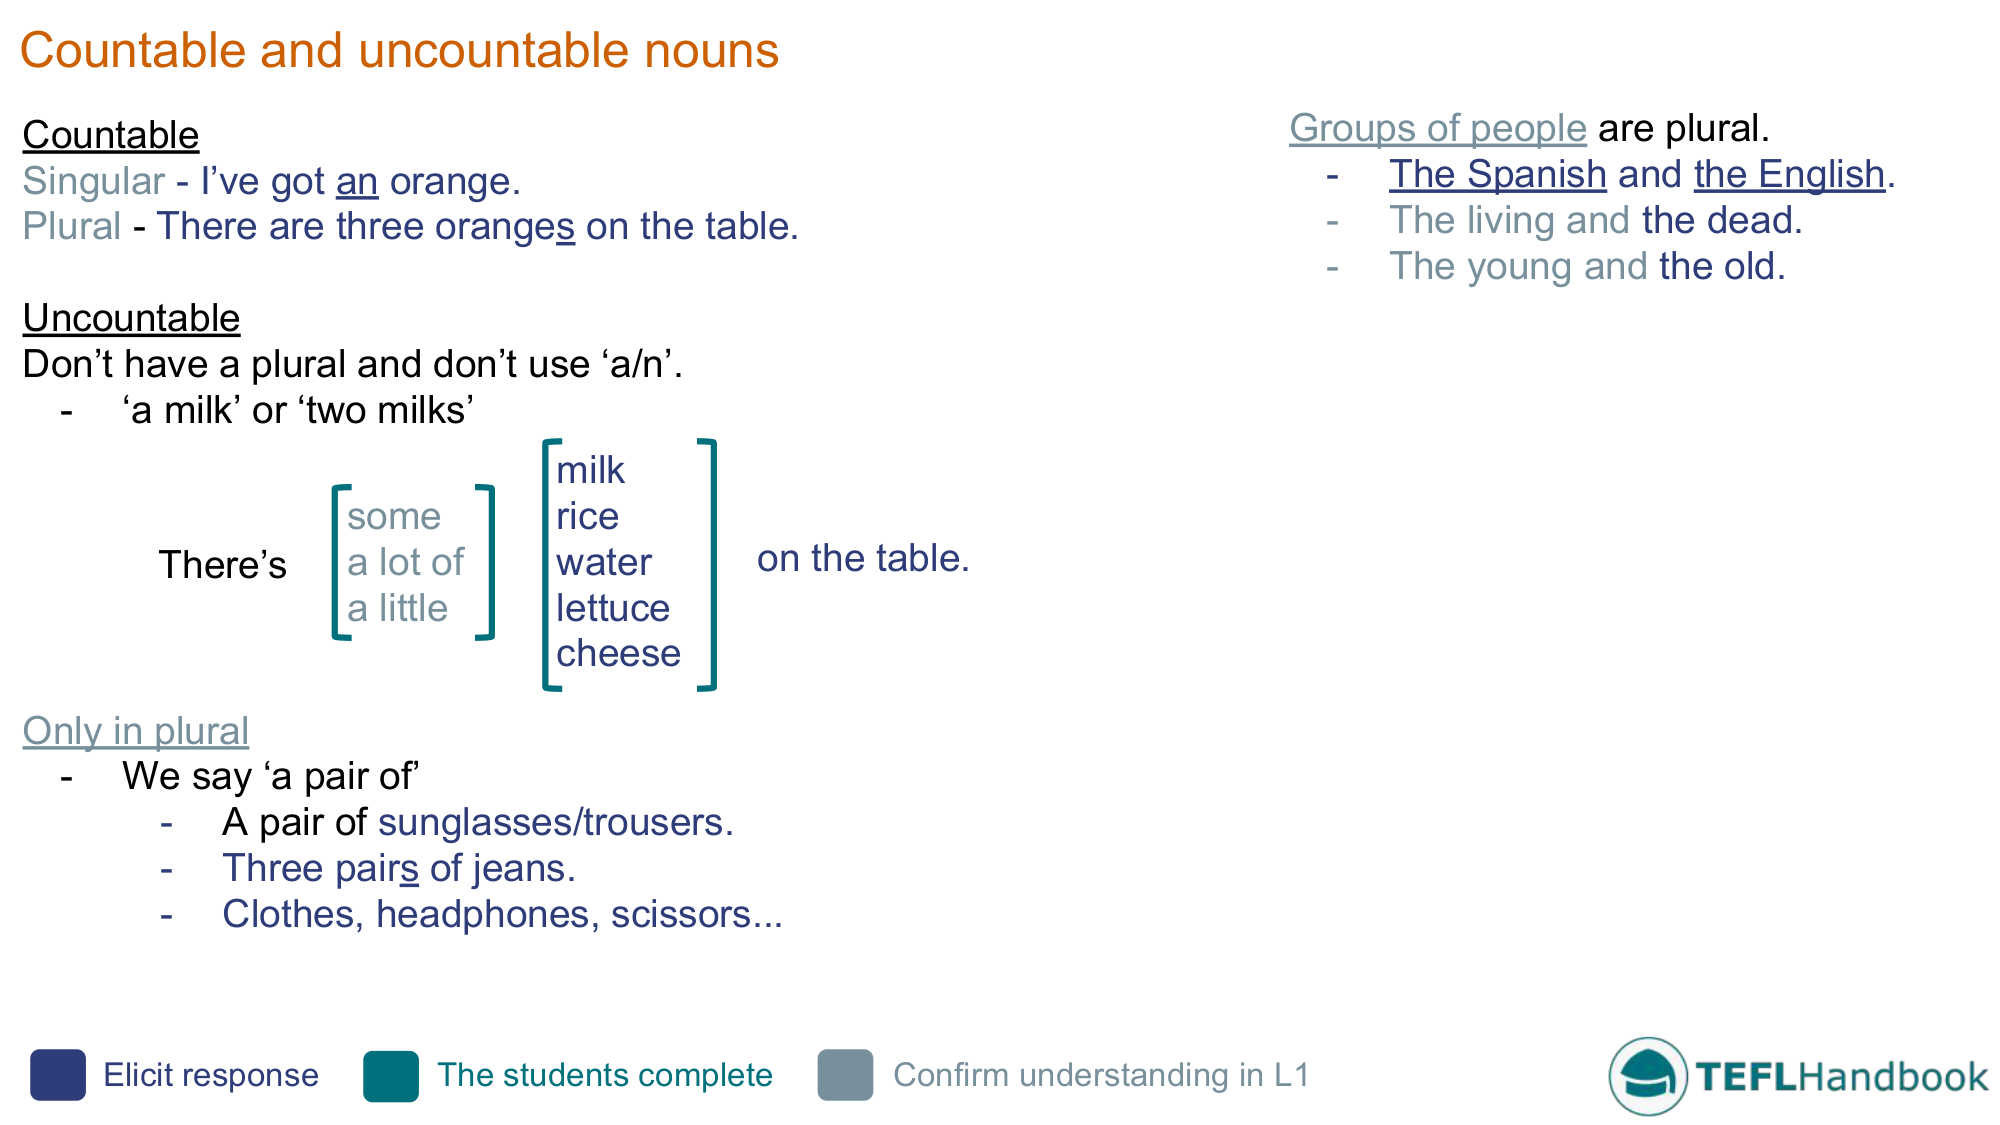 Countable and uncountable | EFL - ESL activities, games and ... on possessive nouns worksheets, types of nouns worksheets, proper nouns worksheets, countable nouns elementary, modified nouns worksheets, countable uncountable nouns english, countable nouns list, nouns and verbs worksheets, count and noncount nouns worksheets, animals nouns worksheets, plural nouns kindergarten worksheets, countable uncountable nouns games, finding common nouns worksheets, mass and count nouns worksheets, countable nouns examples, nouns cut and paste worksheets, gender nouns worksheets,